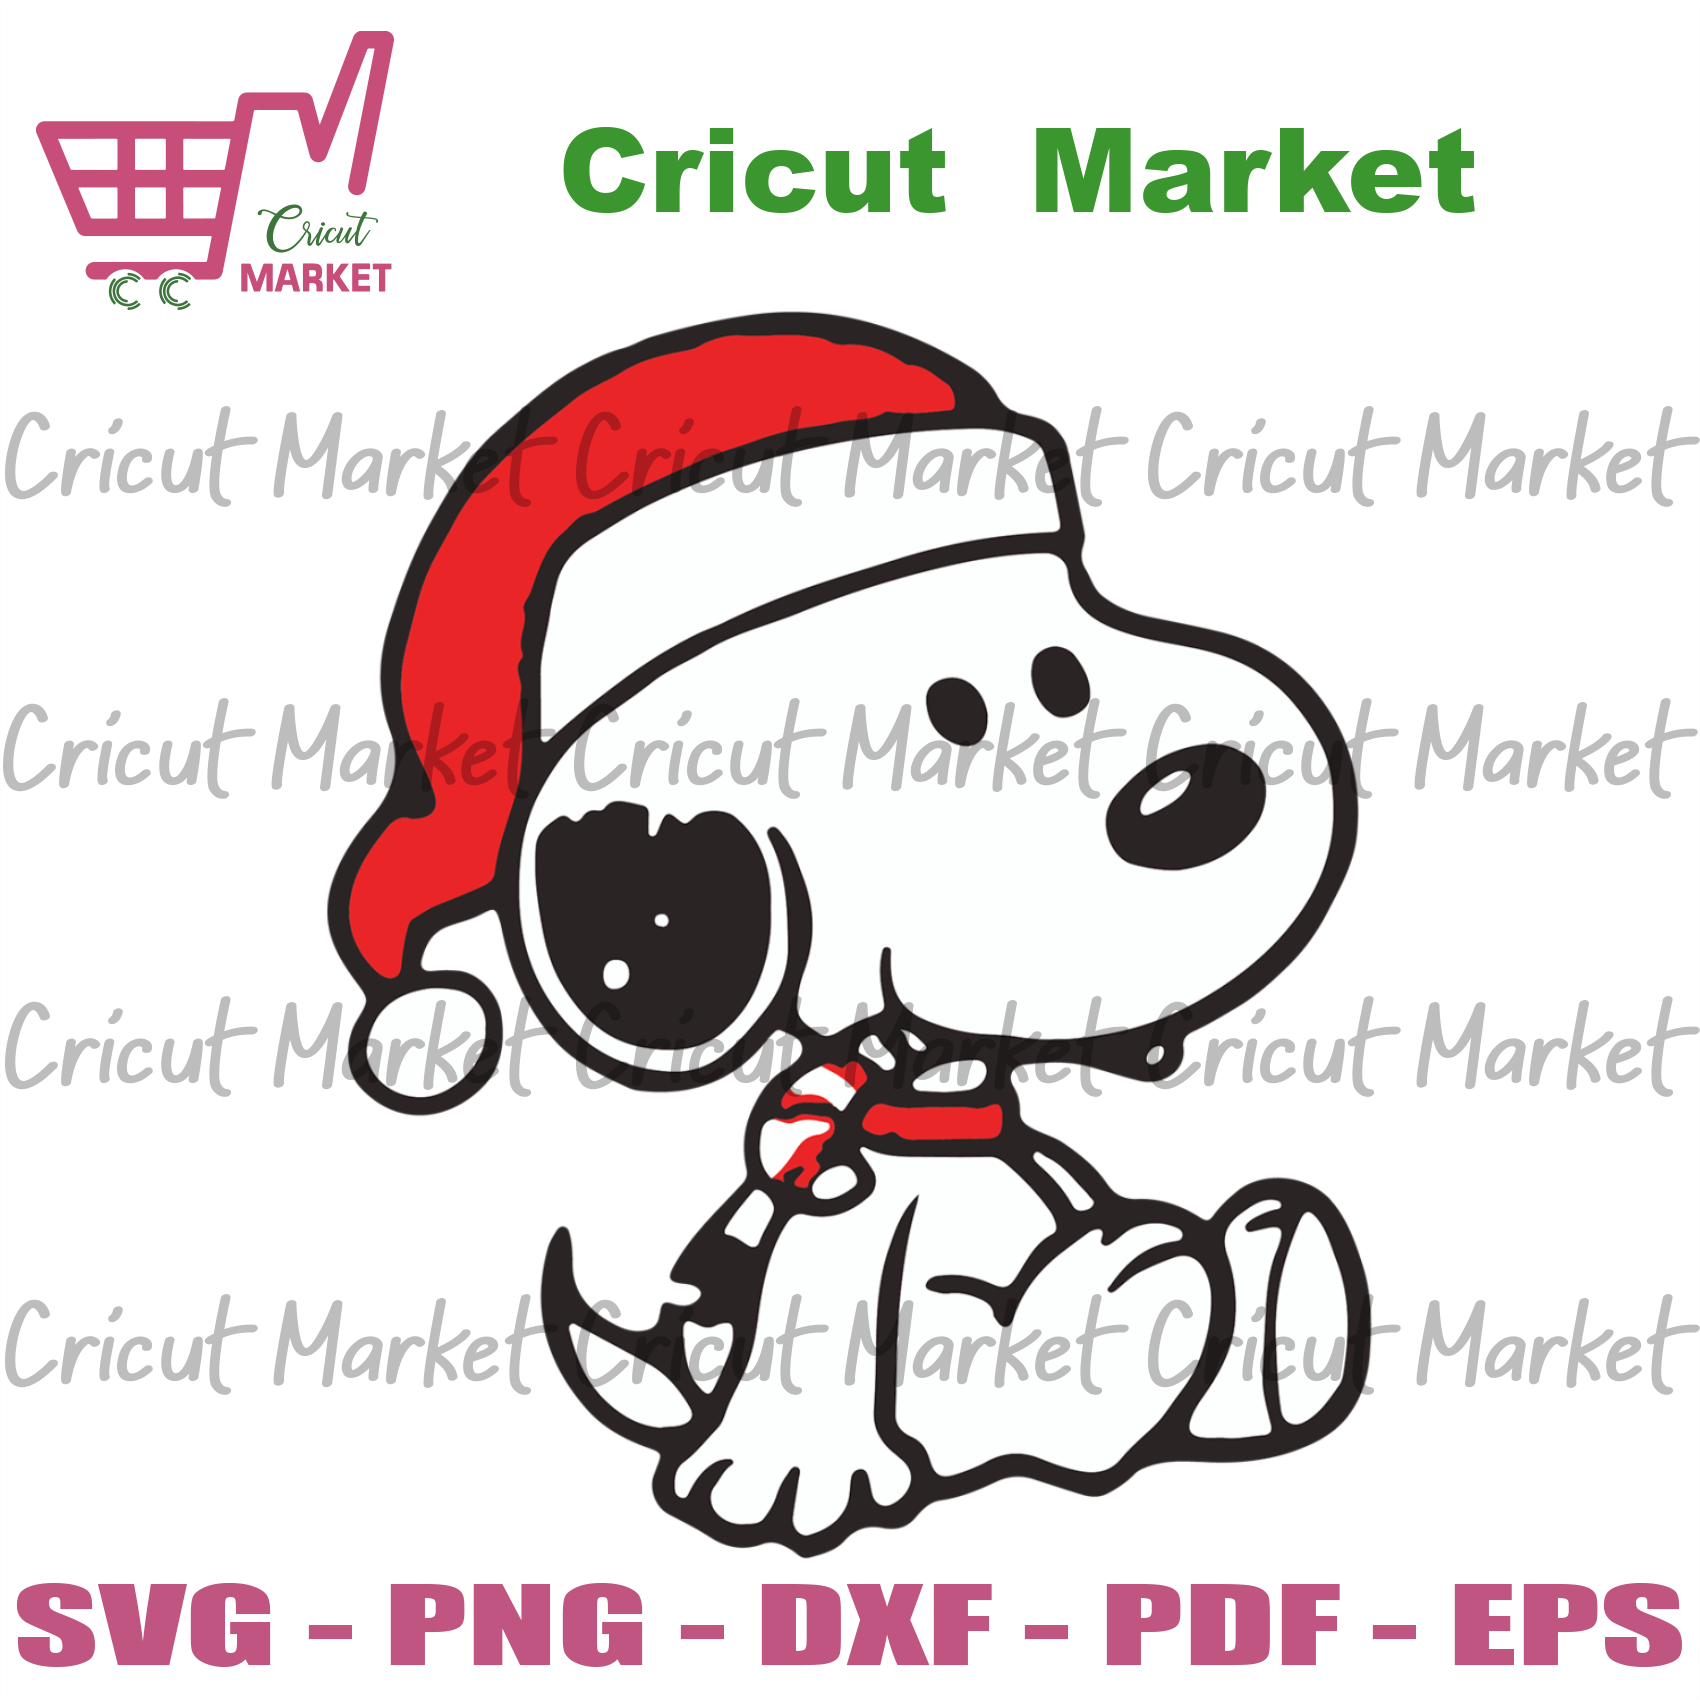 Christmas of Snoopy, Christmas svg, happy Christmas, Christmas gift, Christmas time, Christmas day, Snoopy svg, Snoopy cartoon, cute Snoopy, Snoopy lover, love Snoopy cartoon, fan of Snoopy -